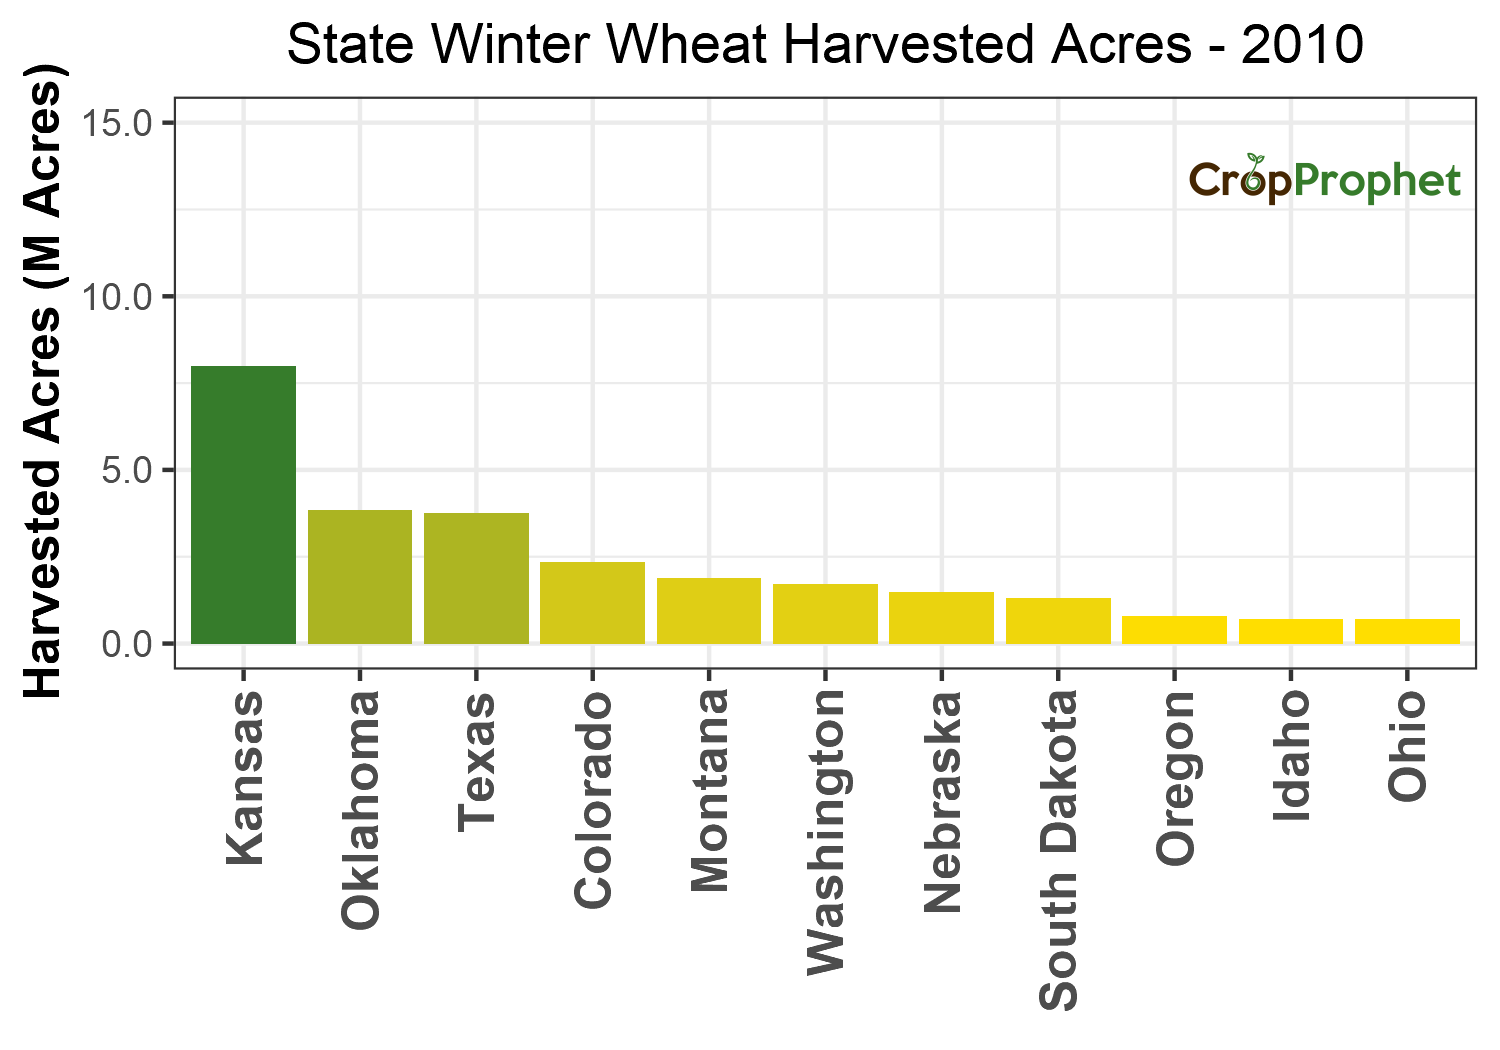 Winter wheat Harvested Acres by State - 2010 Rankings